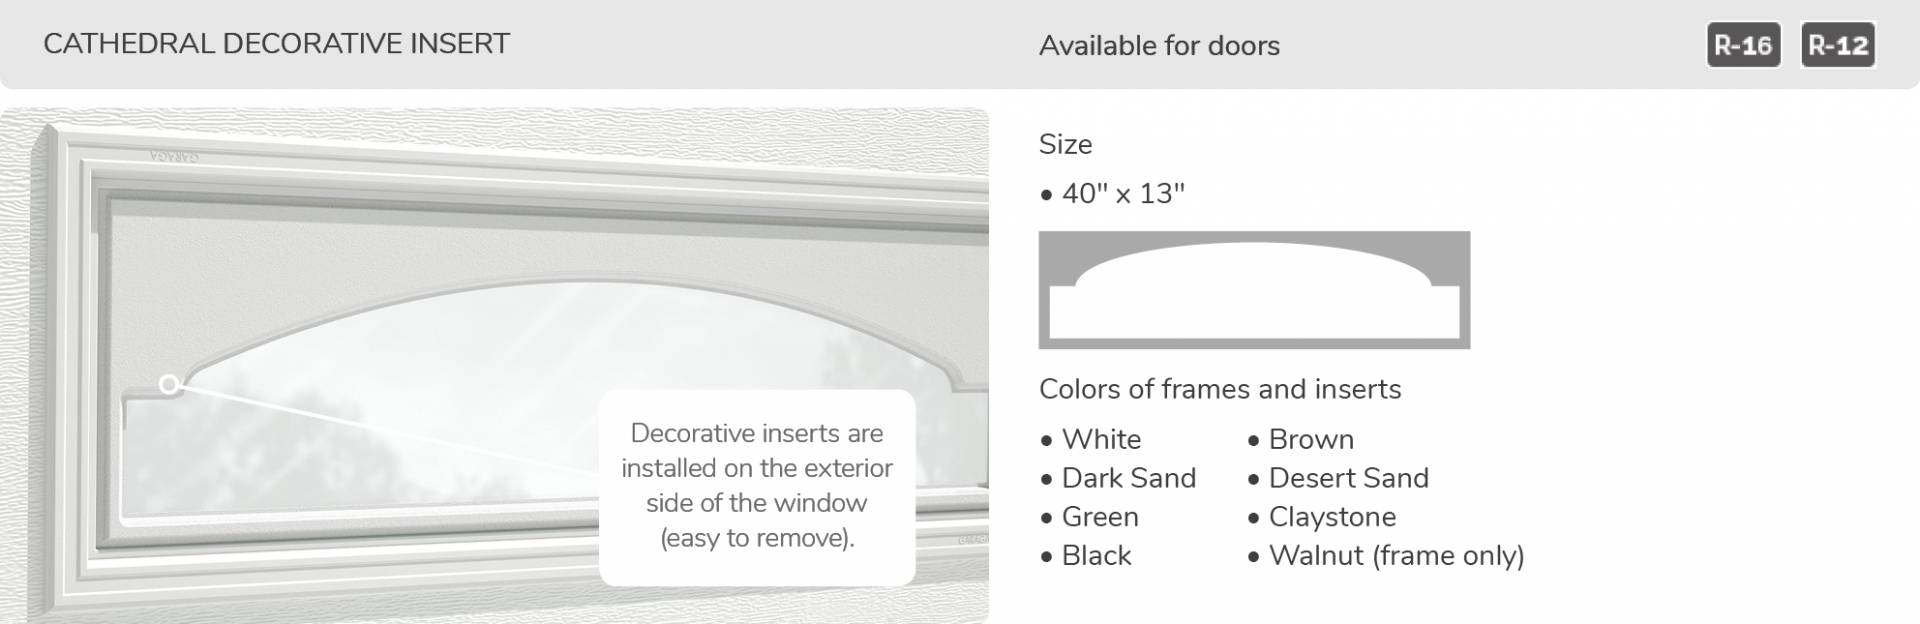 Cathedrale Decorative Insert, 40' x 13', available for doors R-16 and R-12